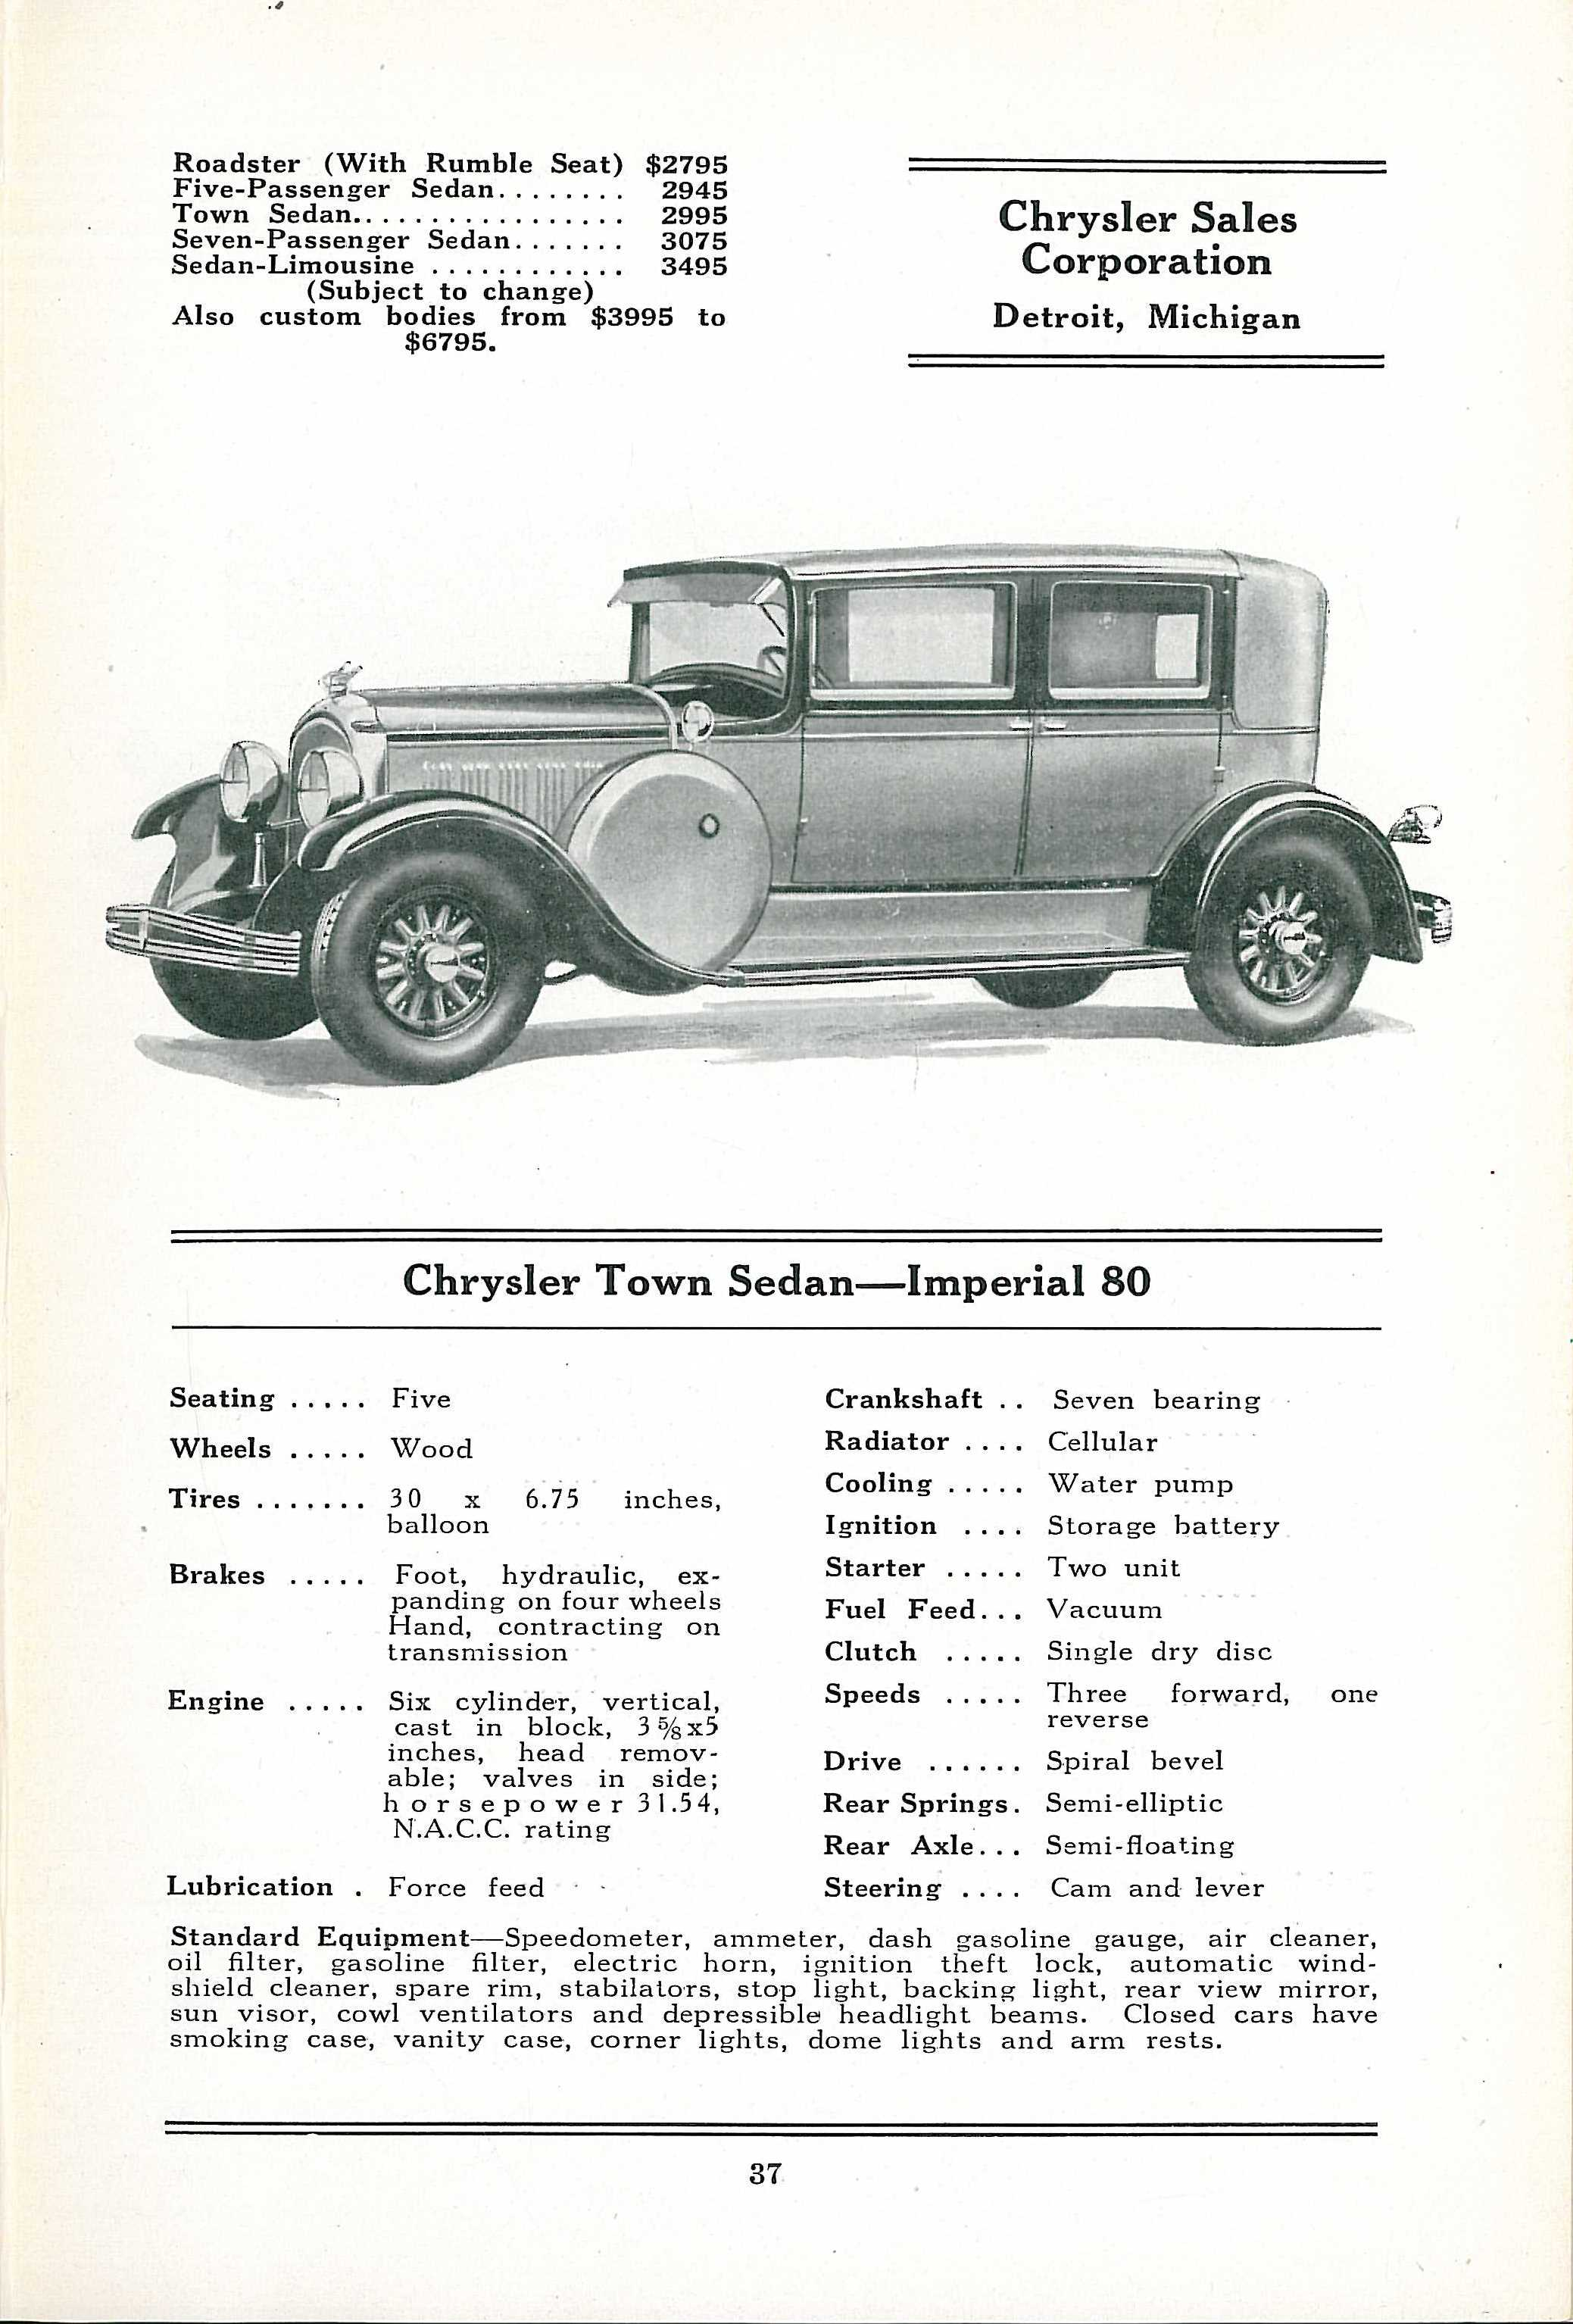 1928 Chrysler